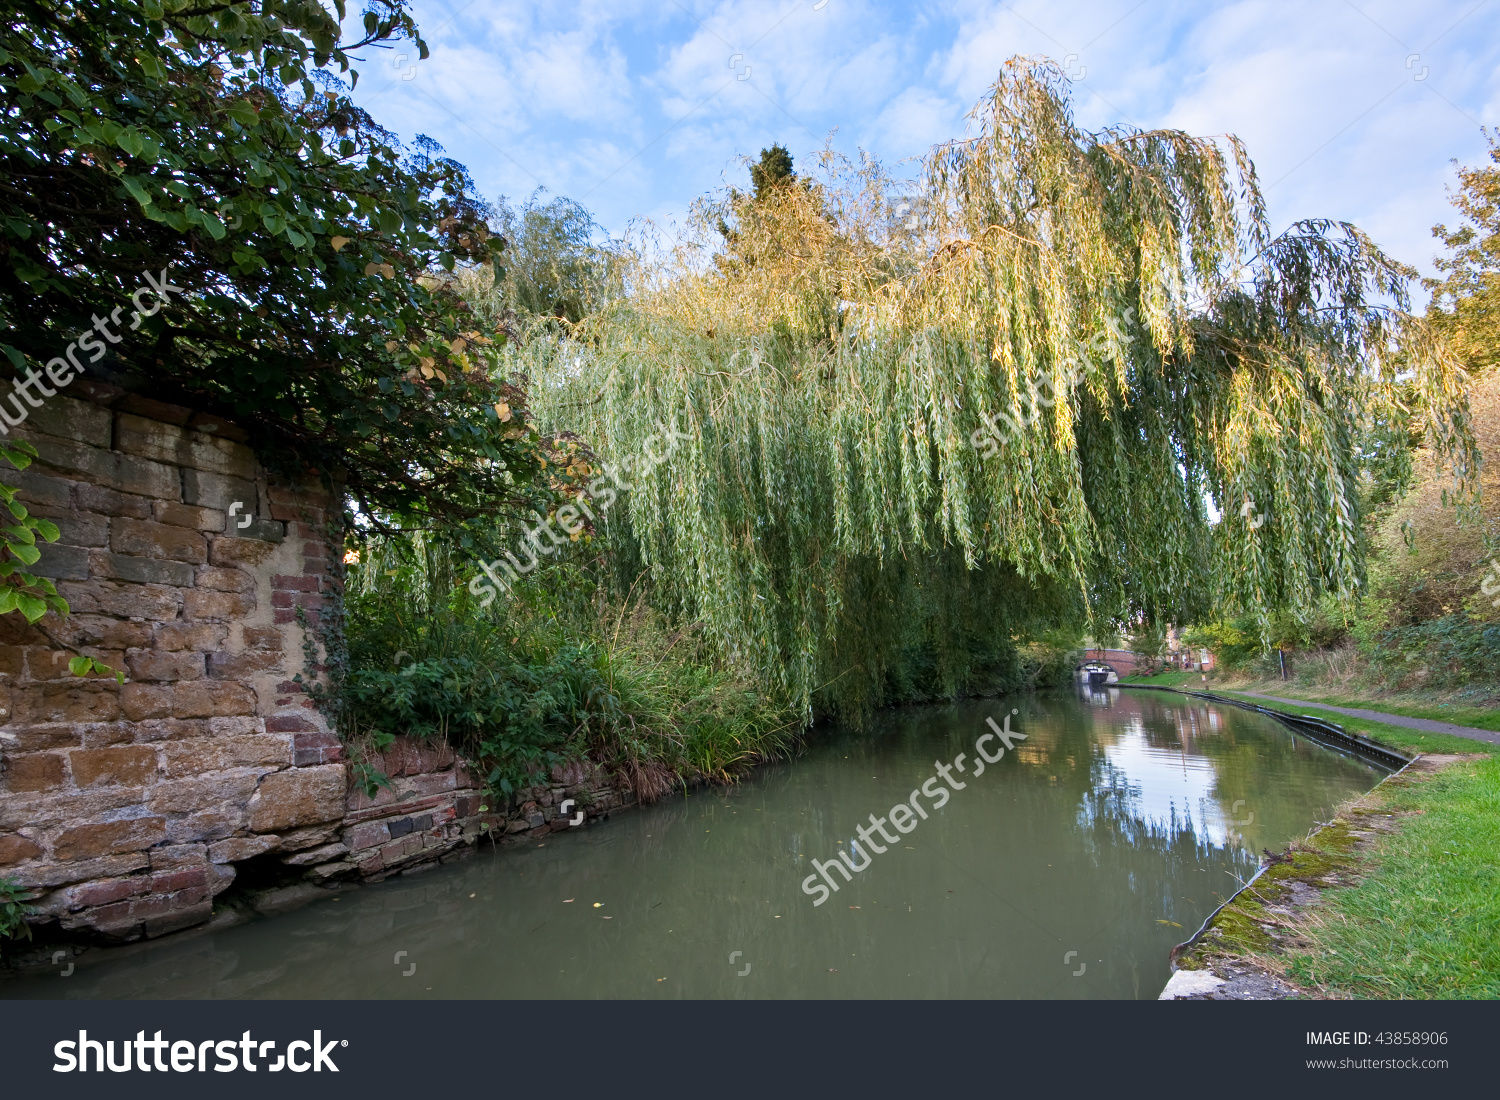 The Grand Union Canal Passes Under A Weeping Willow Tree On.